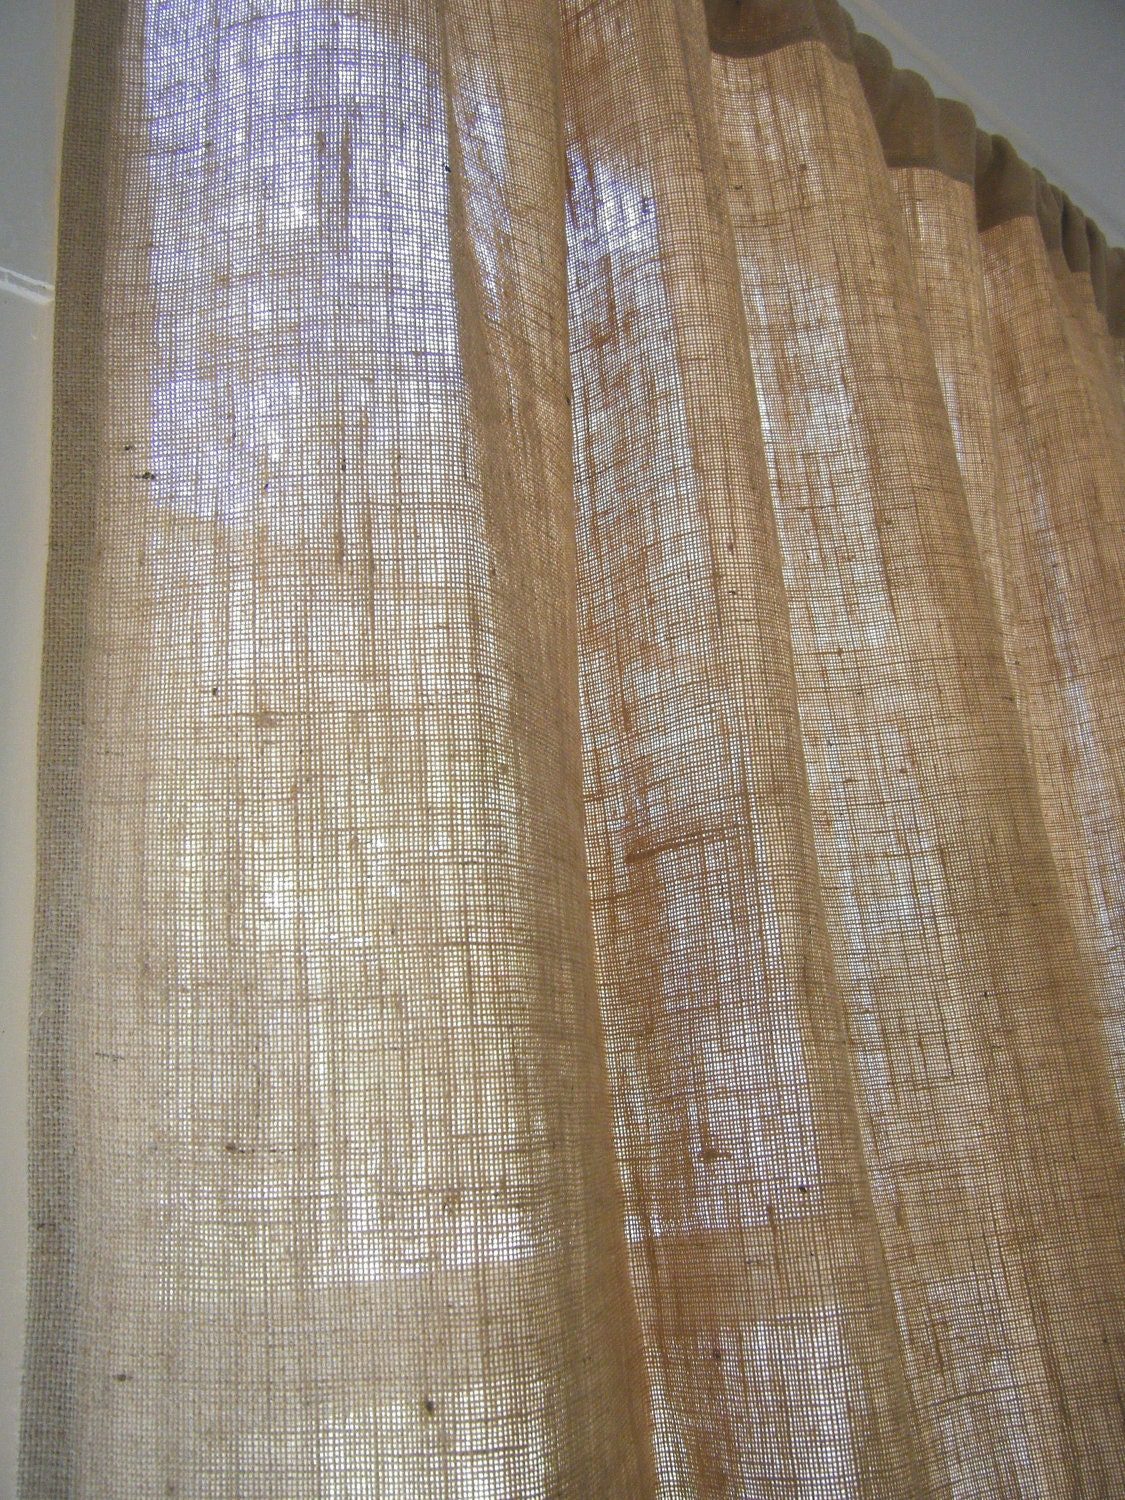 Burlap Curtain Premium Quality 6 Colors 56 Wide X. The Brothers That Just Do Gutters. Sinks For Kitchen. Bunkbeds. Modus Furniture International. Oriental Furnishings. Rose Concrete. Oak Night Stands. Weaver Construction